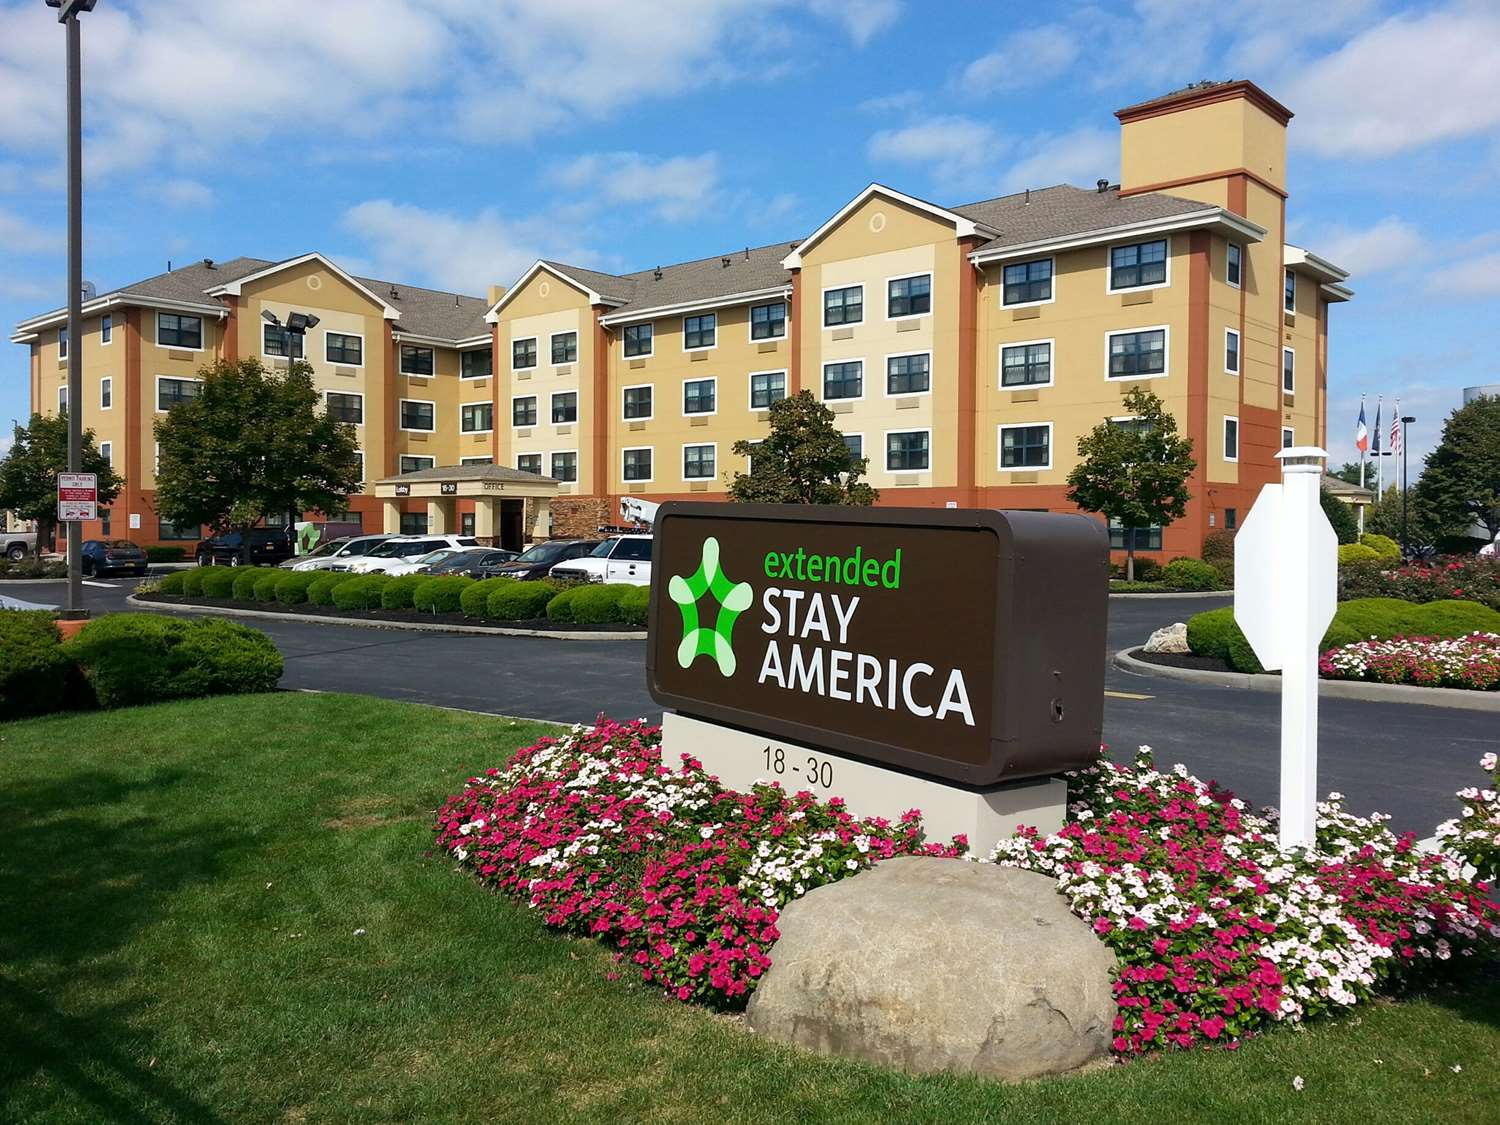 Extended Stay America Hotel Whitestone Queens Ny See